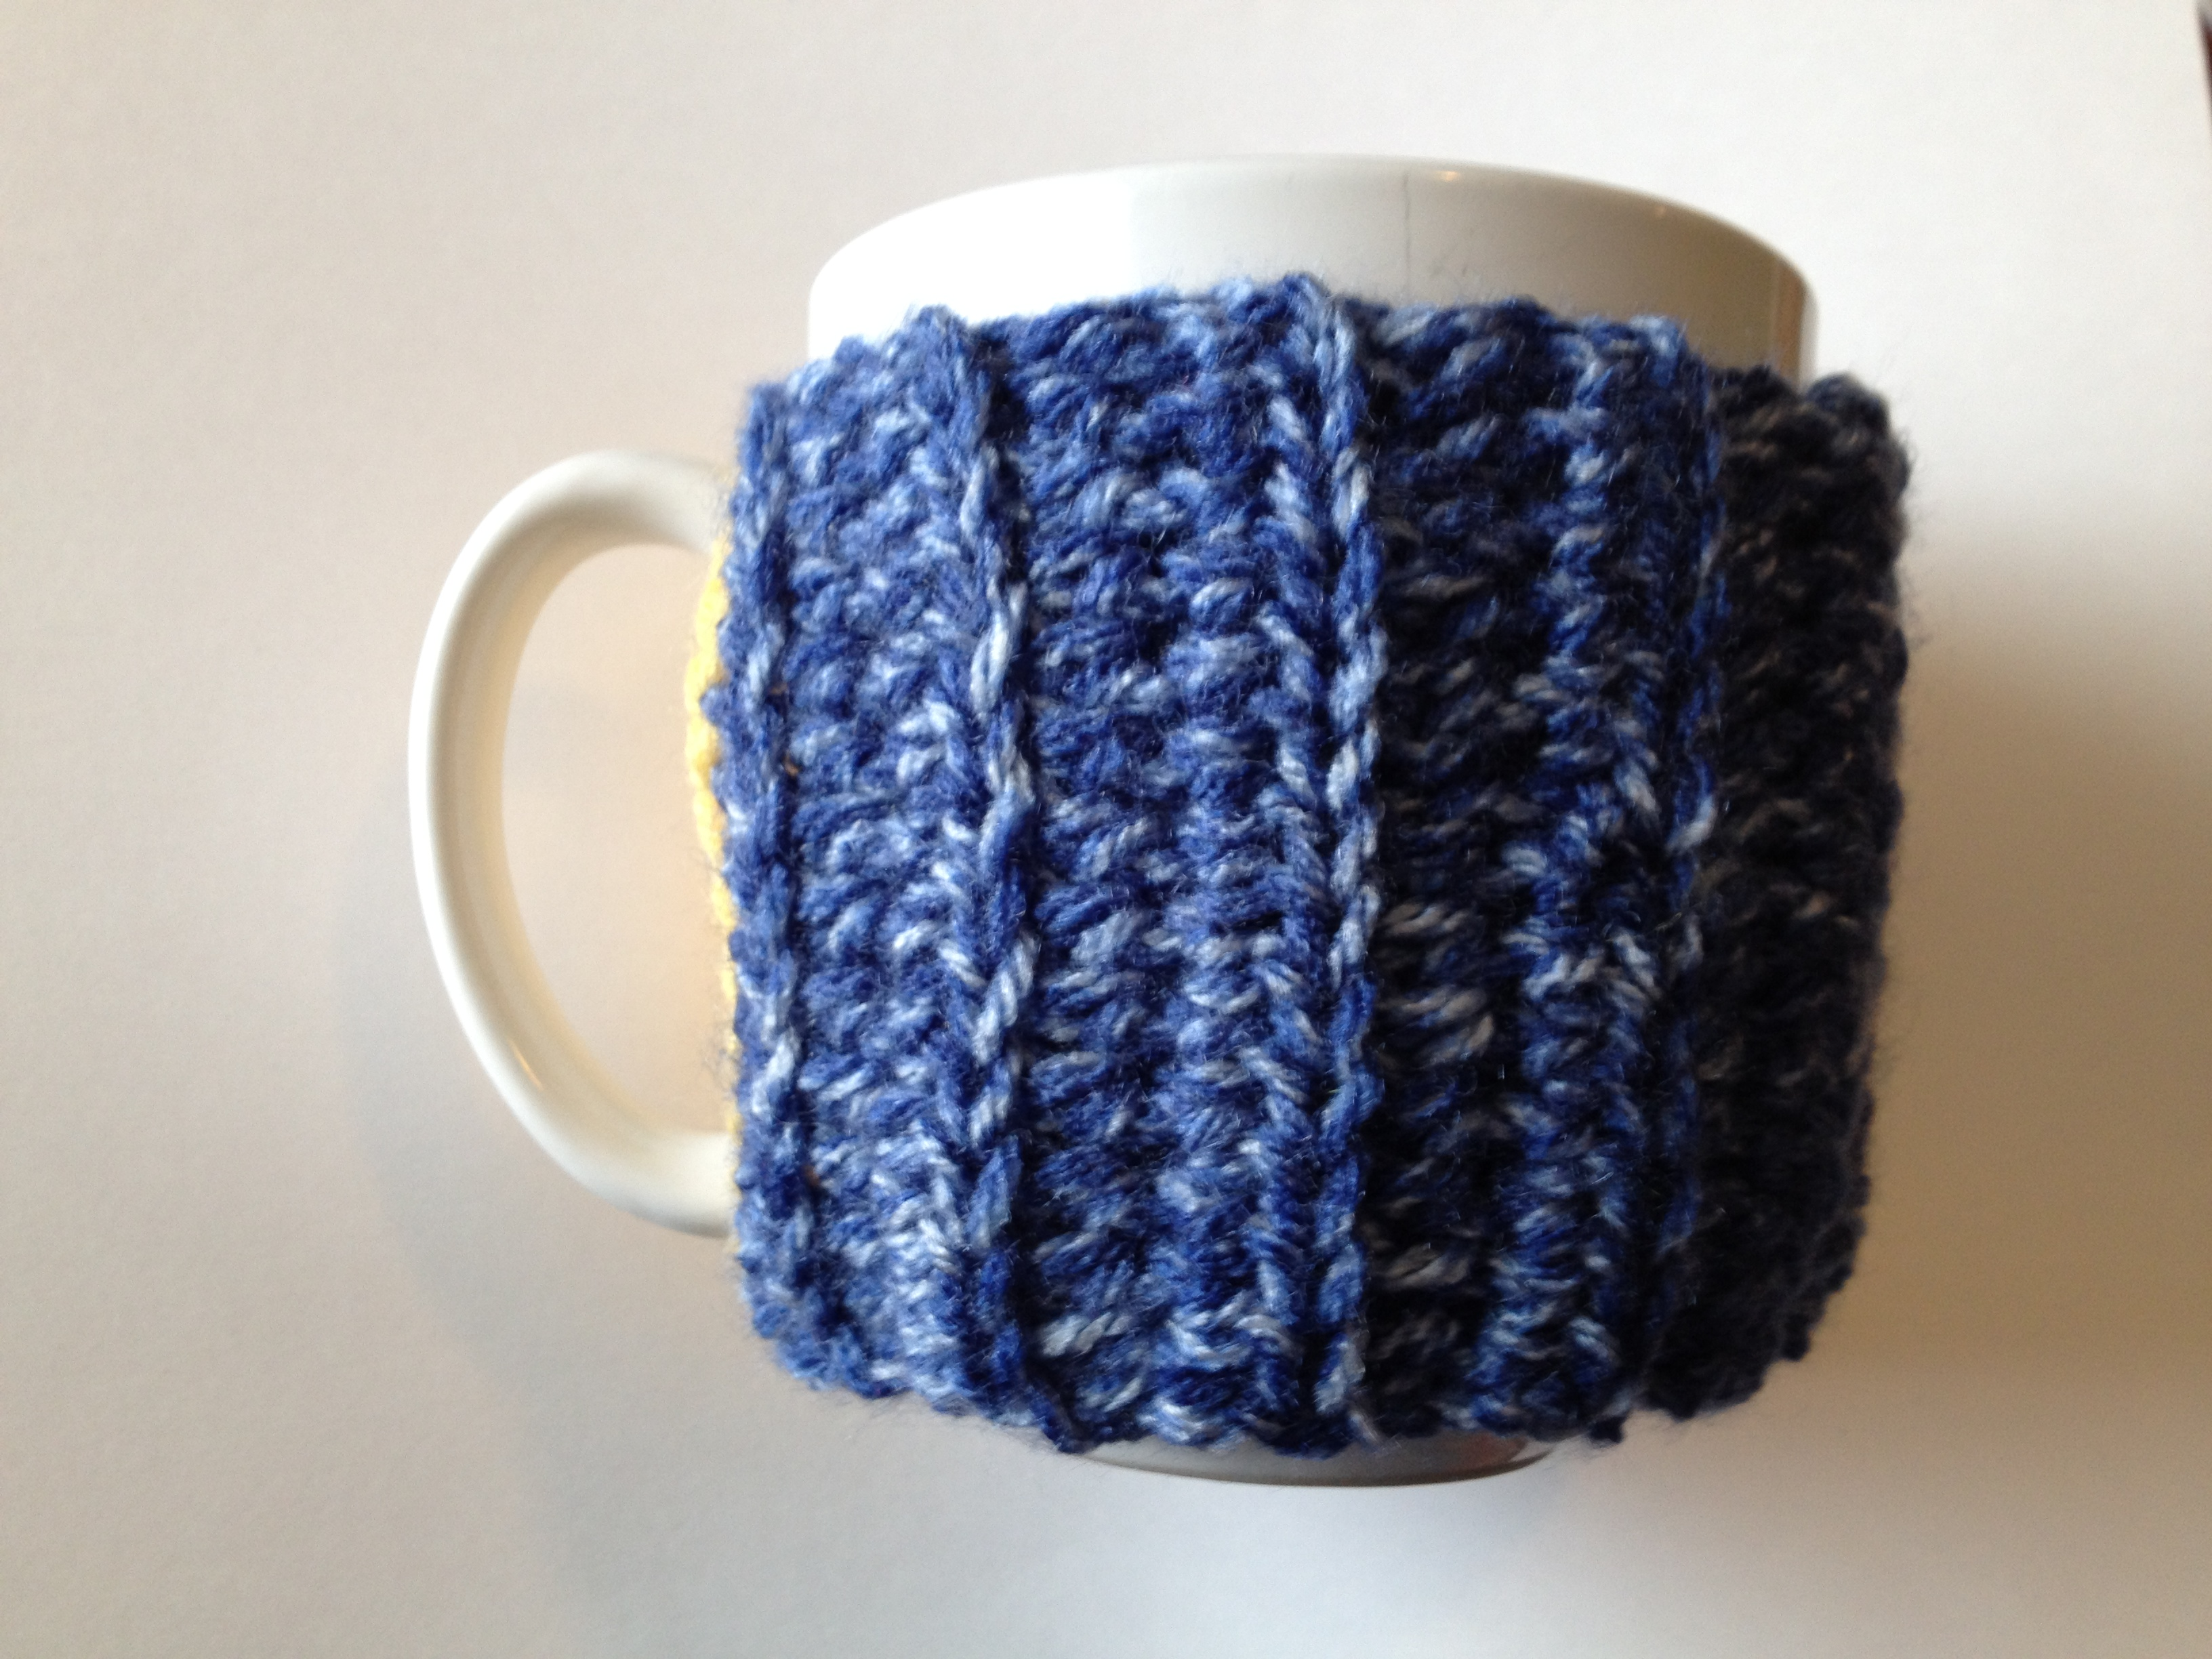 Free mug cozy pattern chocolate dog studio for Cup cozy pillow